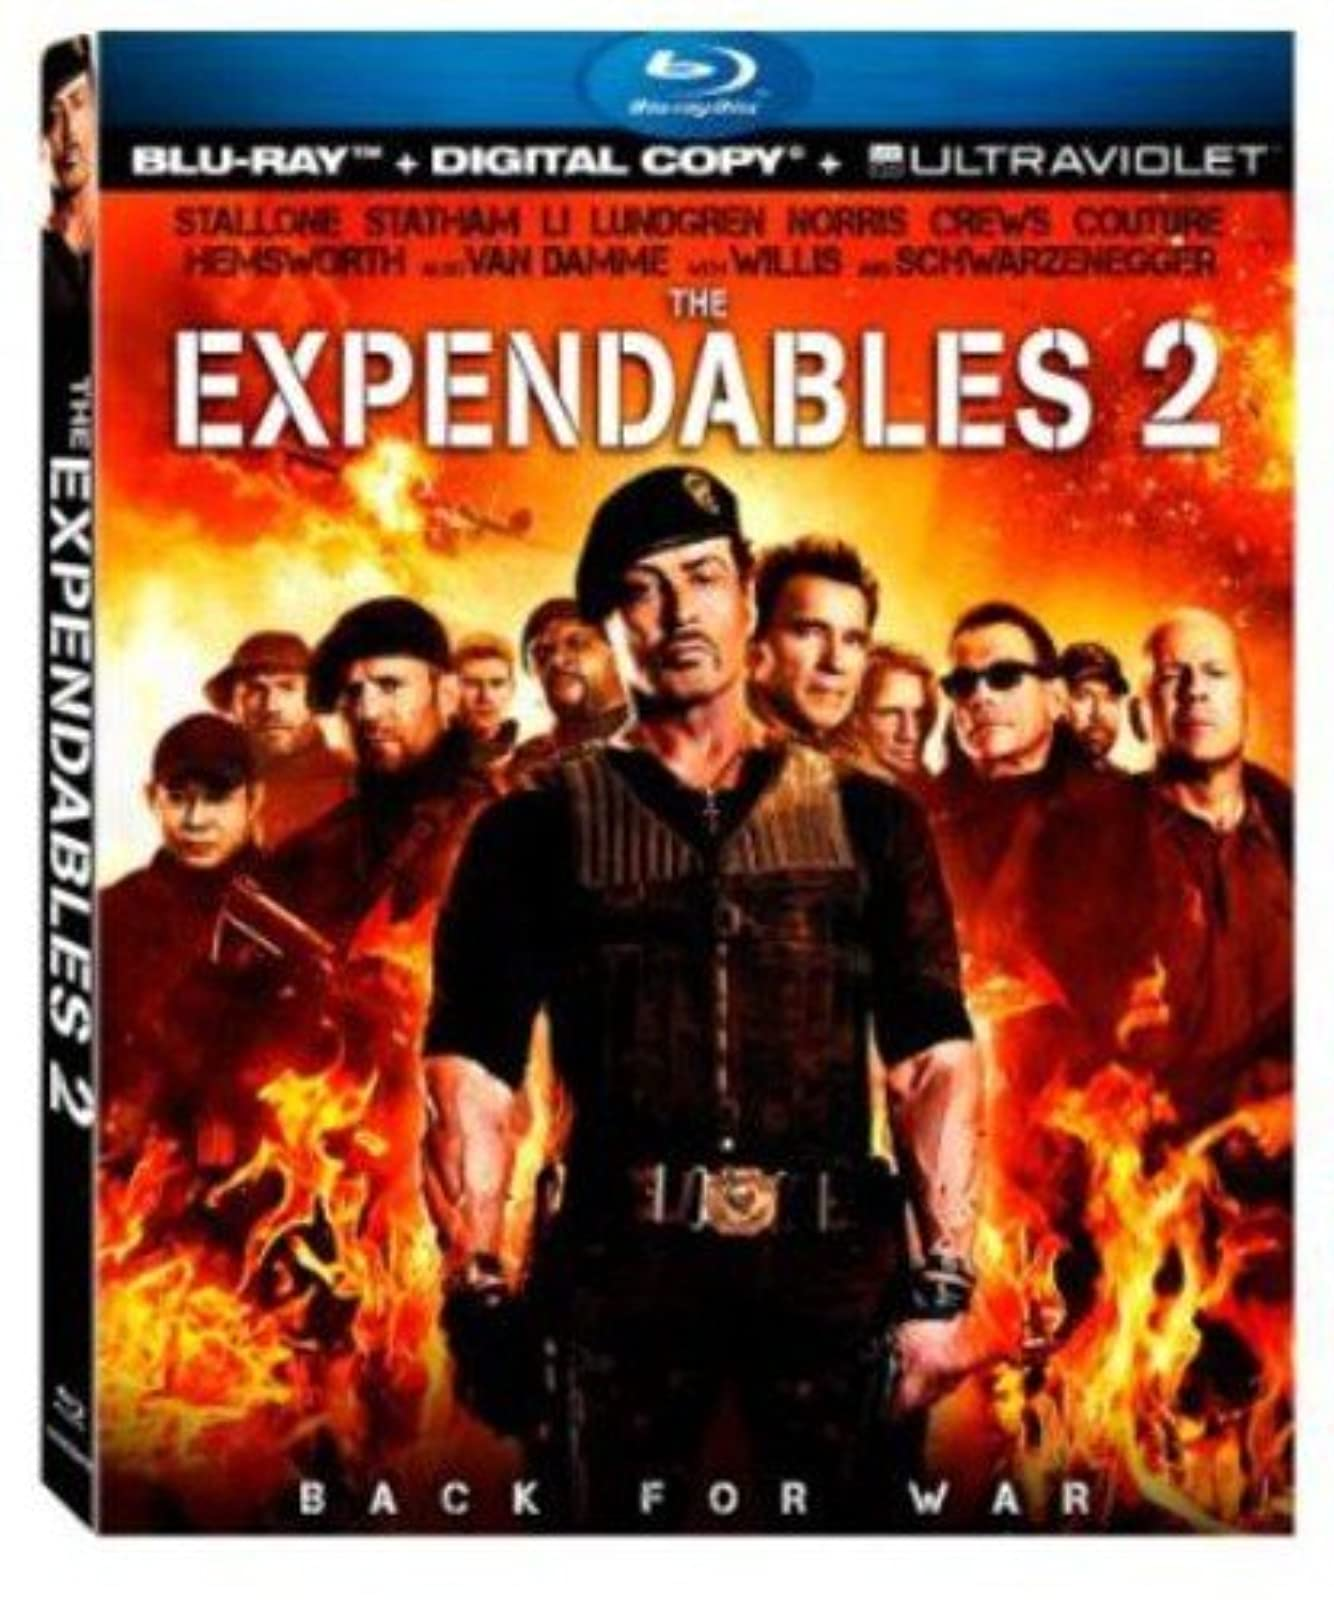 The Expendables 2 Ultraviolet On Blu-Ray With Sylvester Stallone